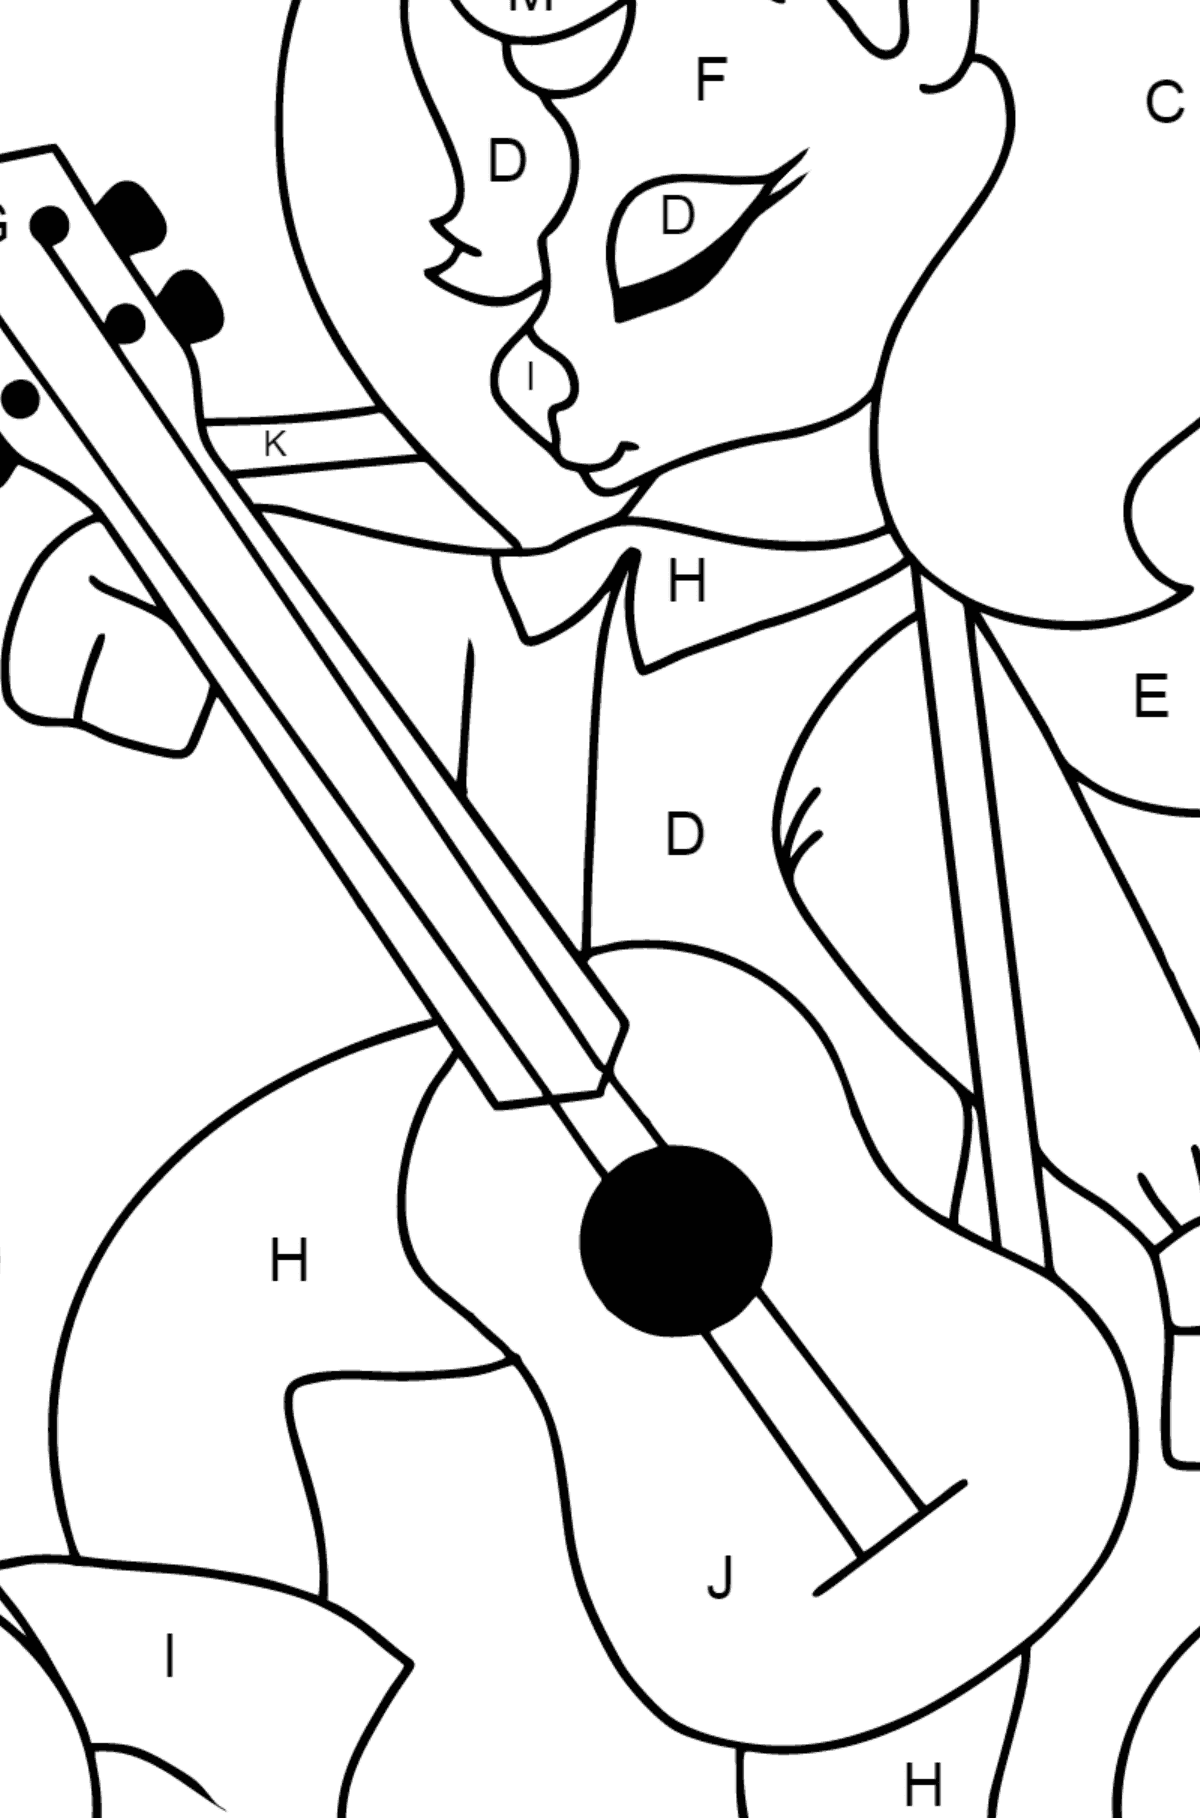 Coloring Page - A Unicorn with a Guitar - Coloring by Letters for Children